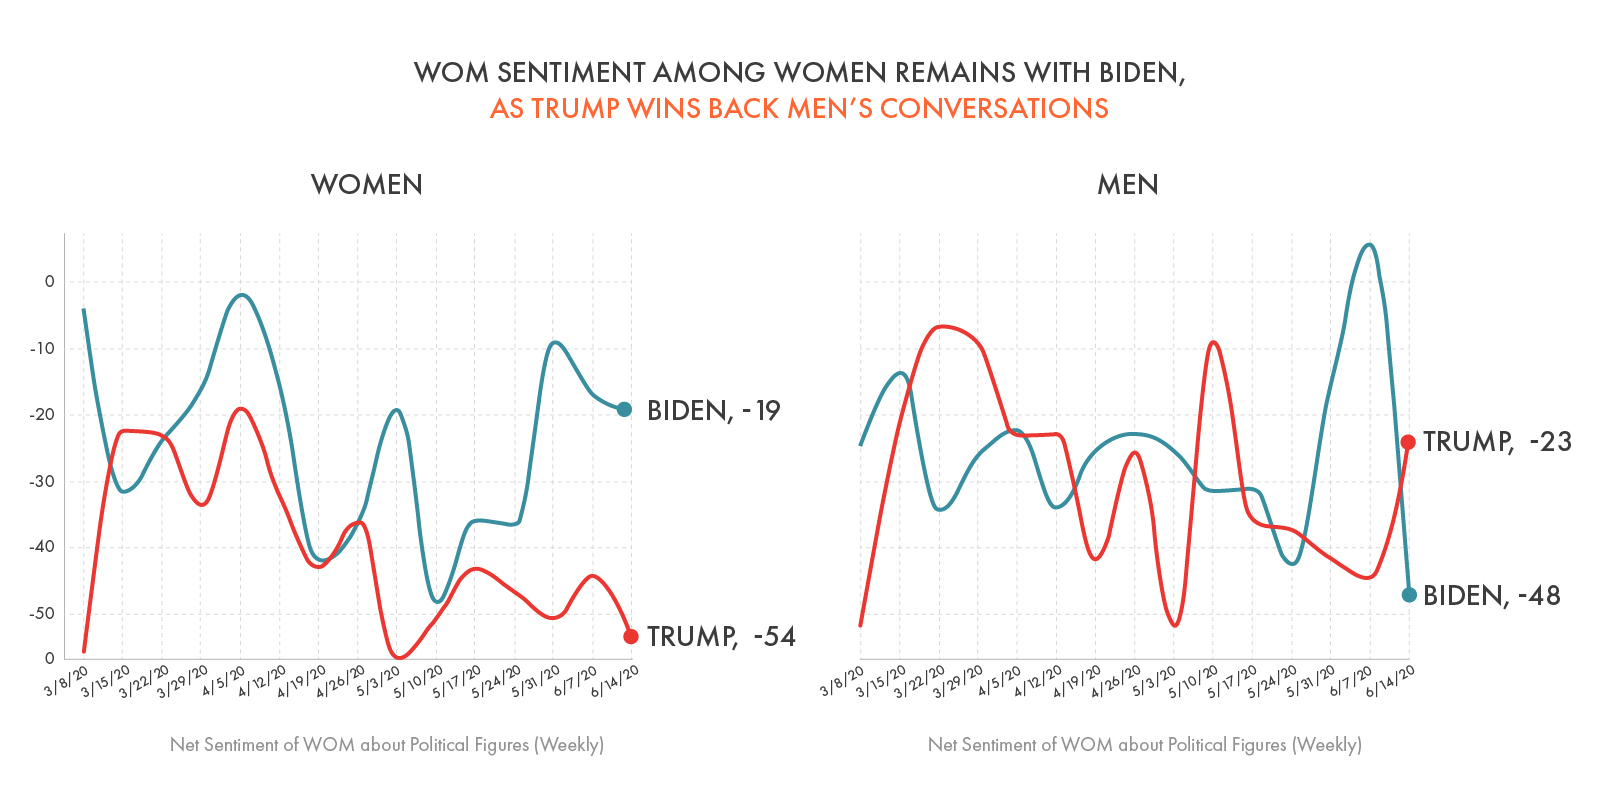 WOM Sentiment Among Women Remains With Biden, As Trump Wins Back Men's Conversations